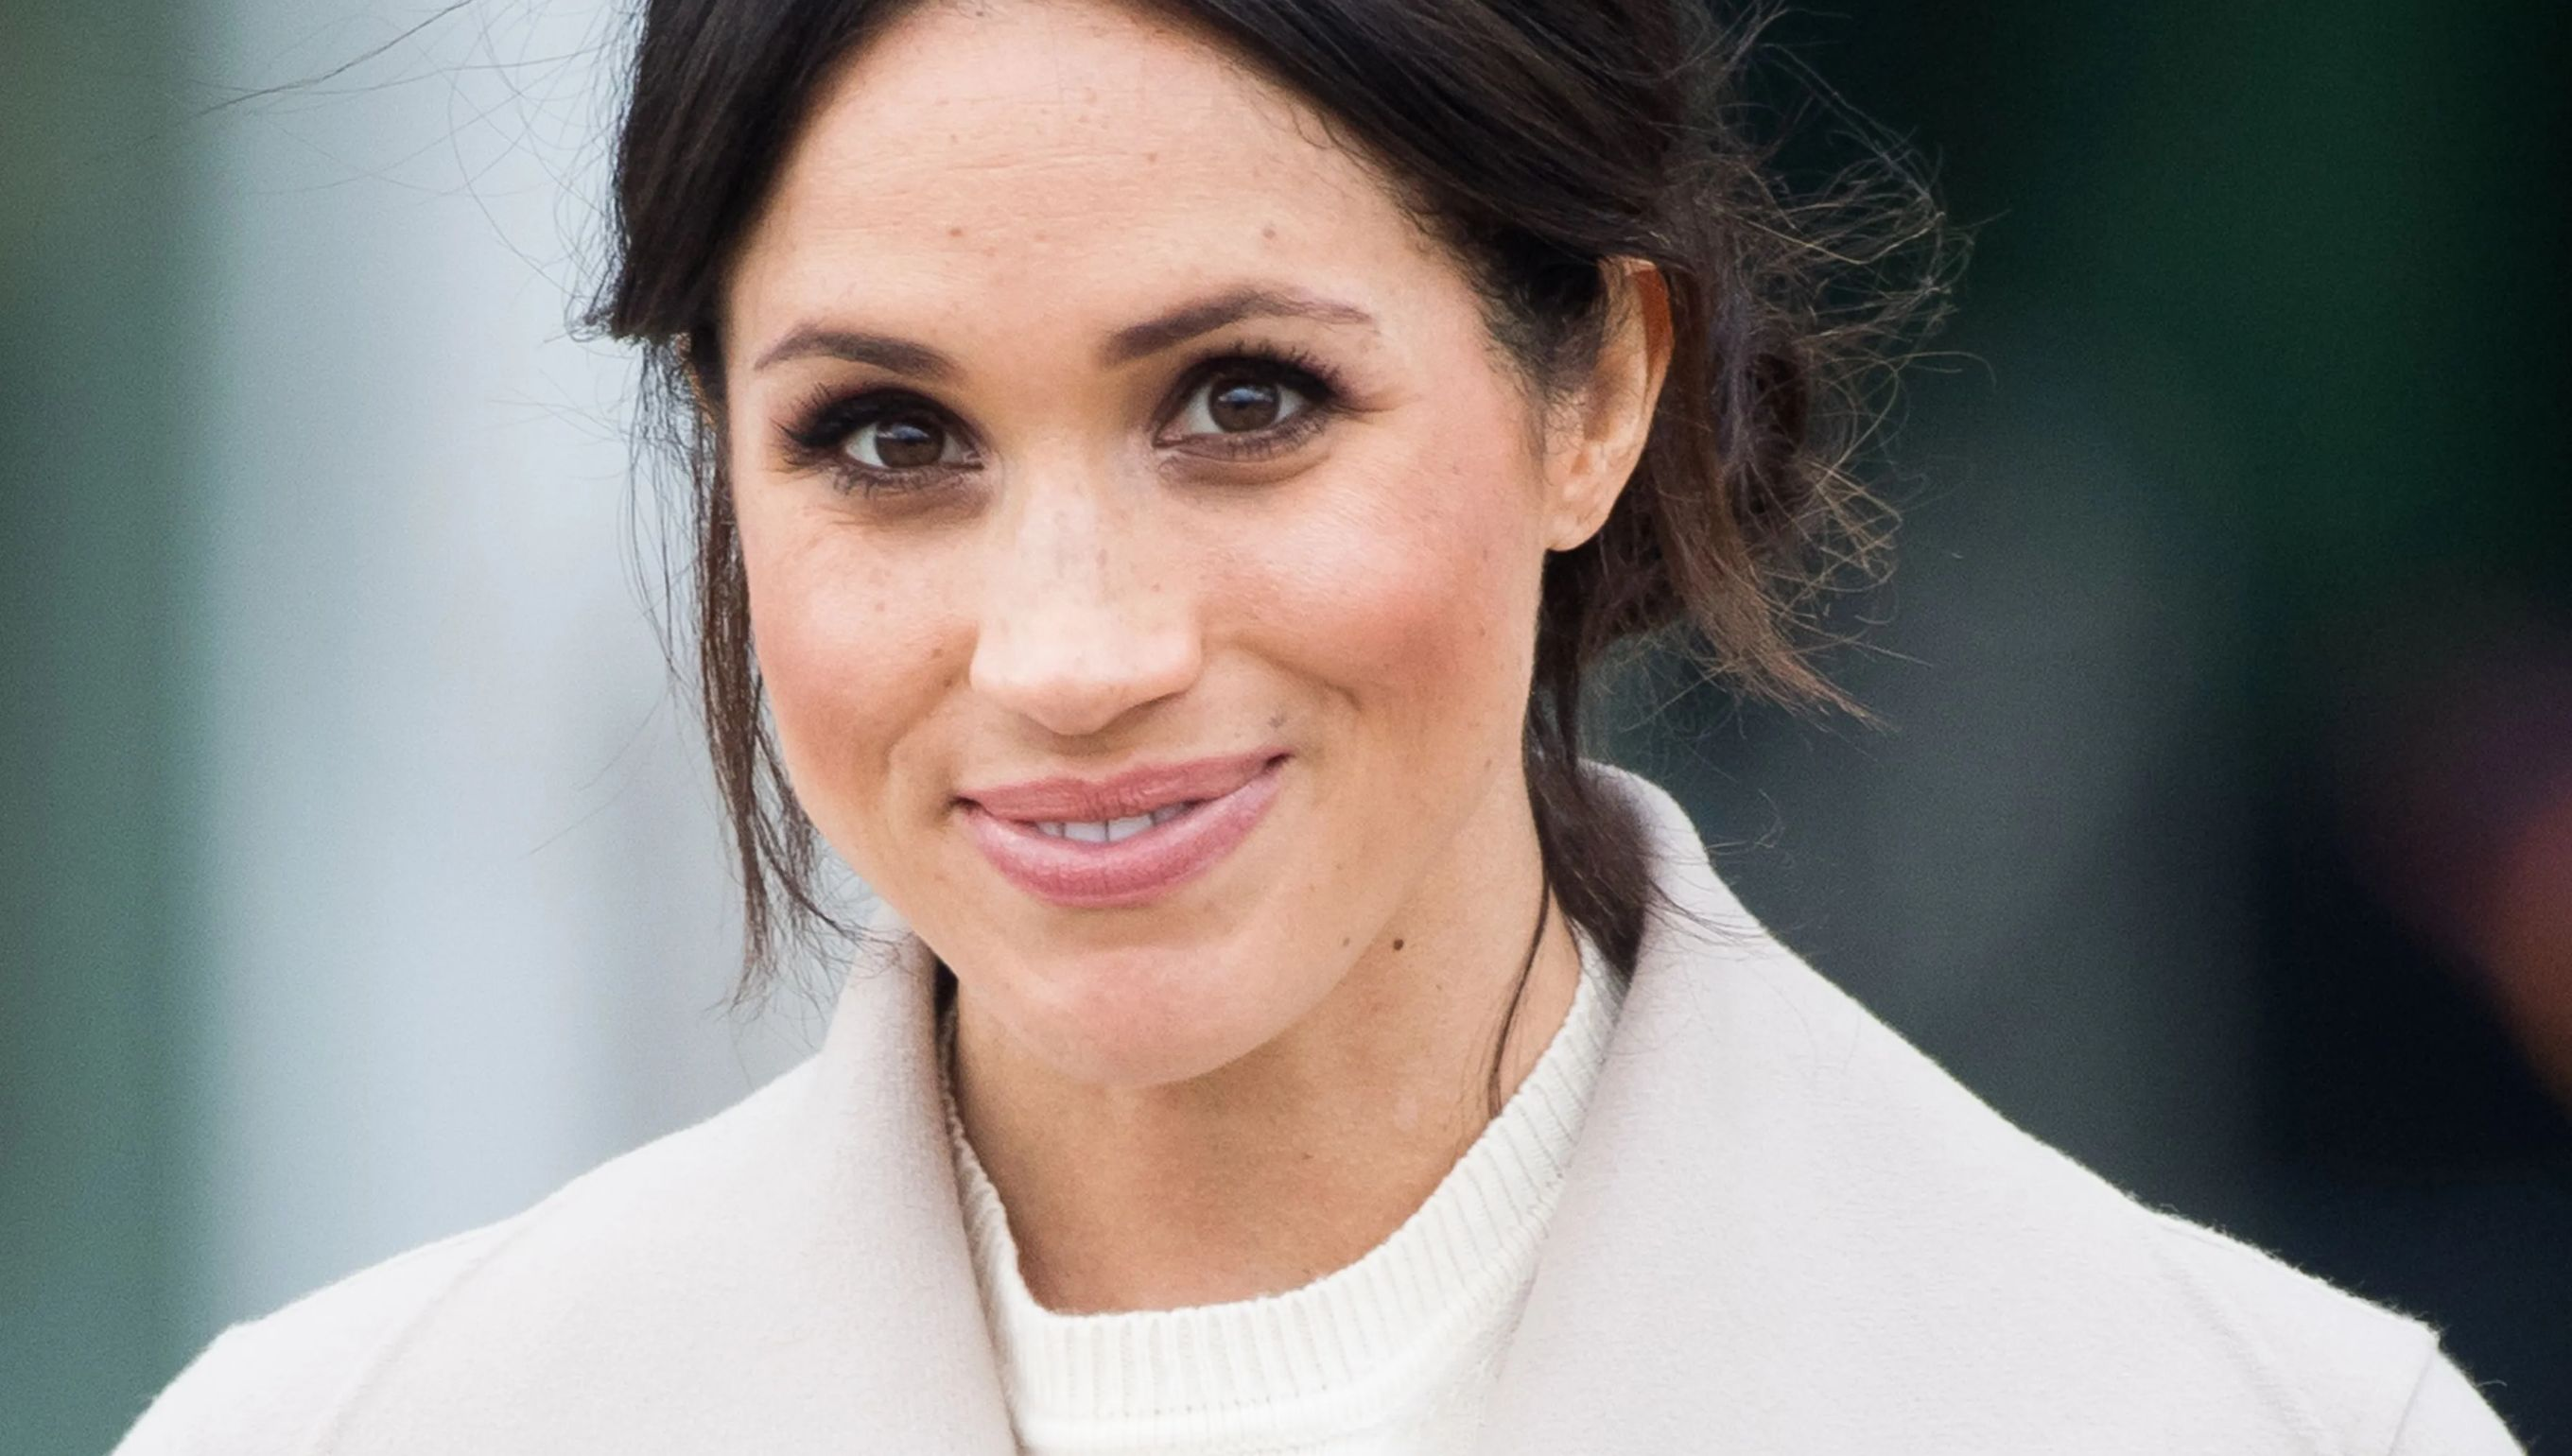 Meghan Markle may still bear scars from her Royal past